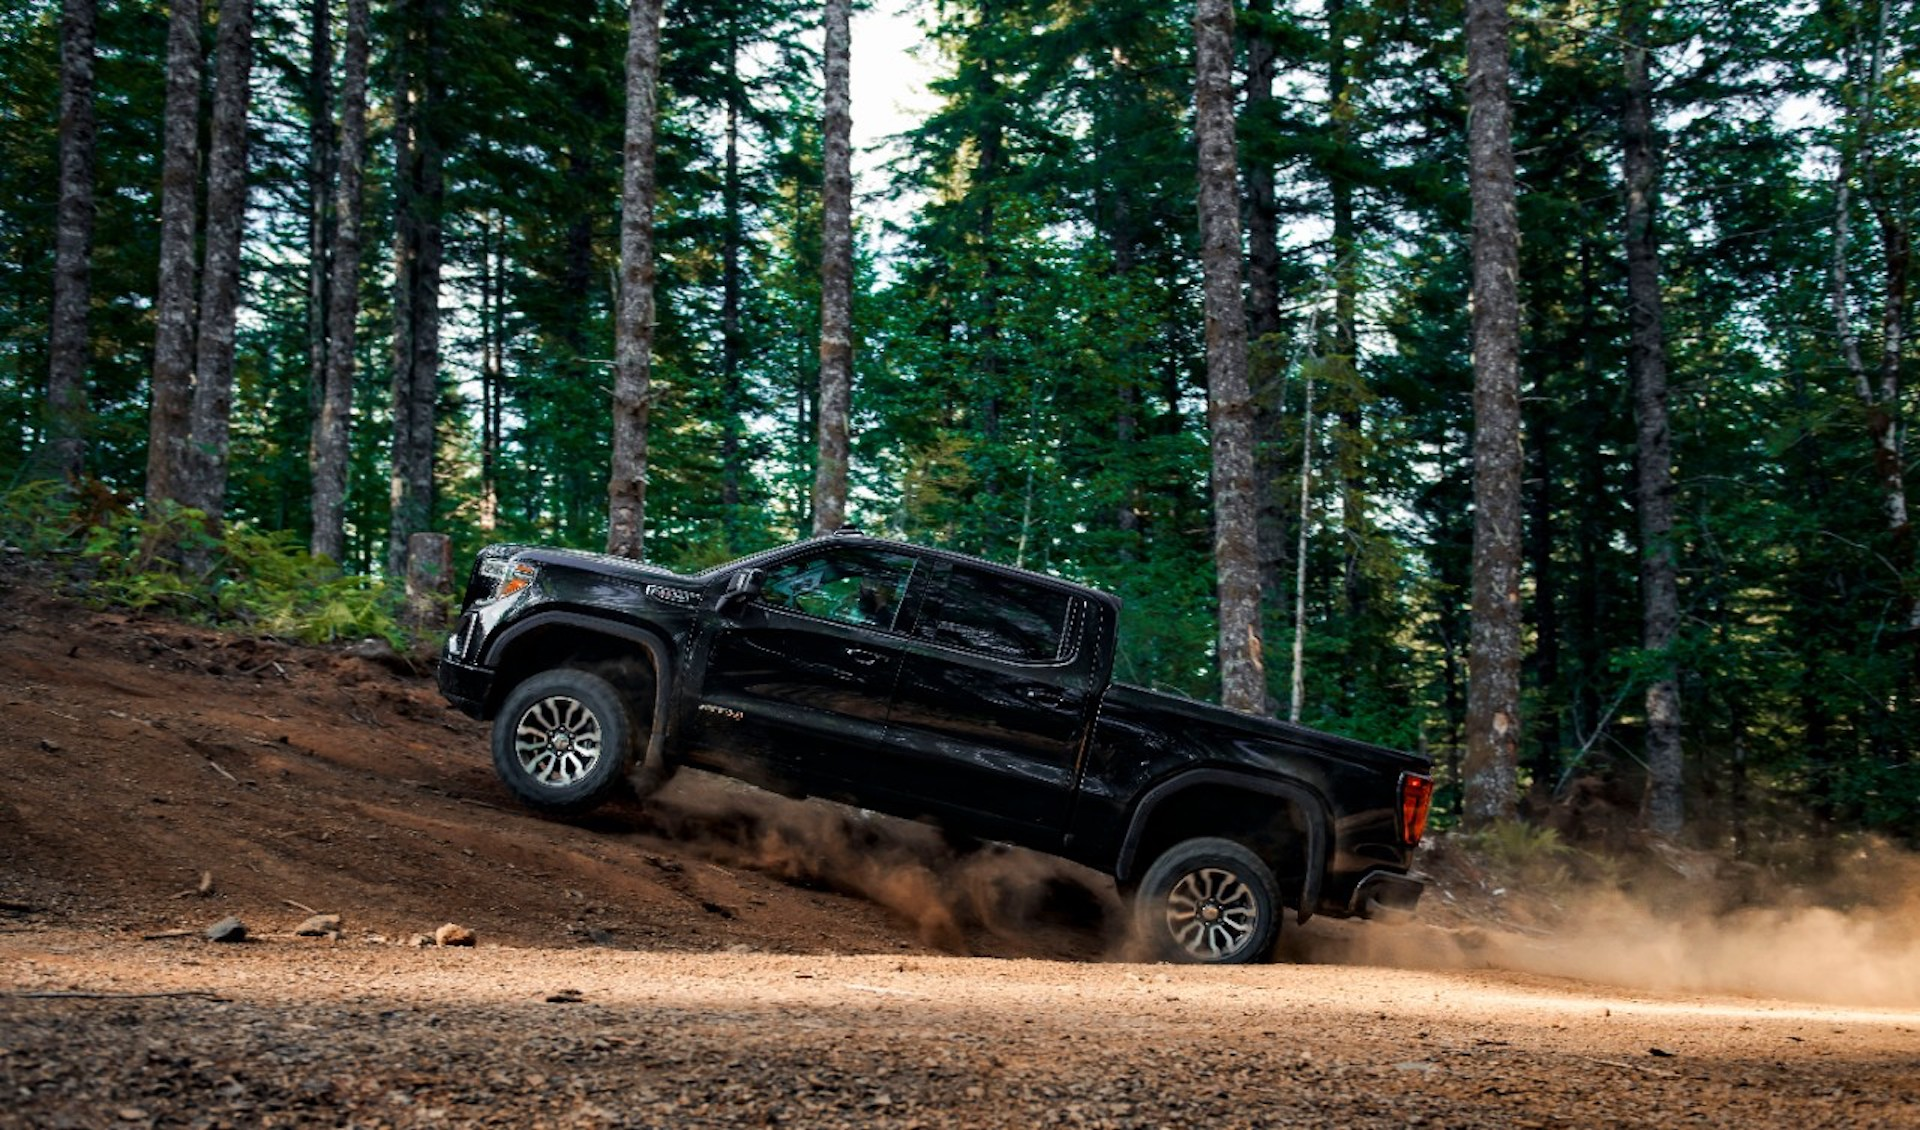 2019 GMC Sierra AT4 Adds Horsepower With Off-Road